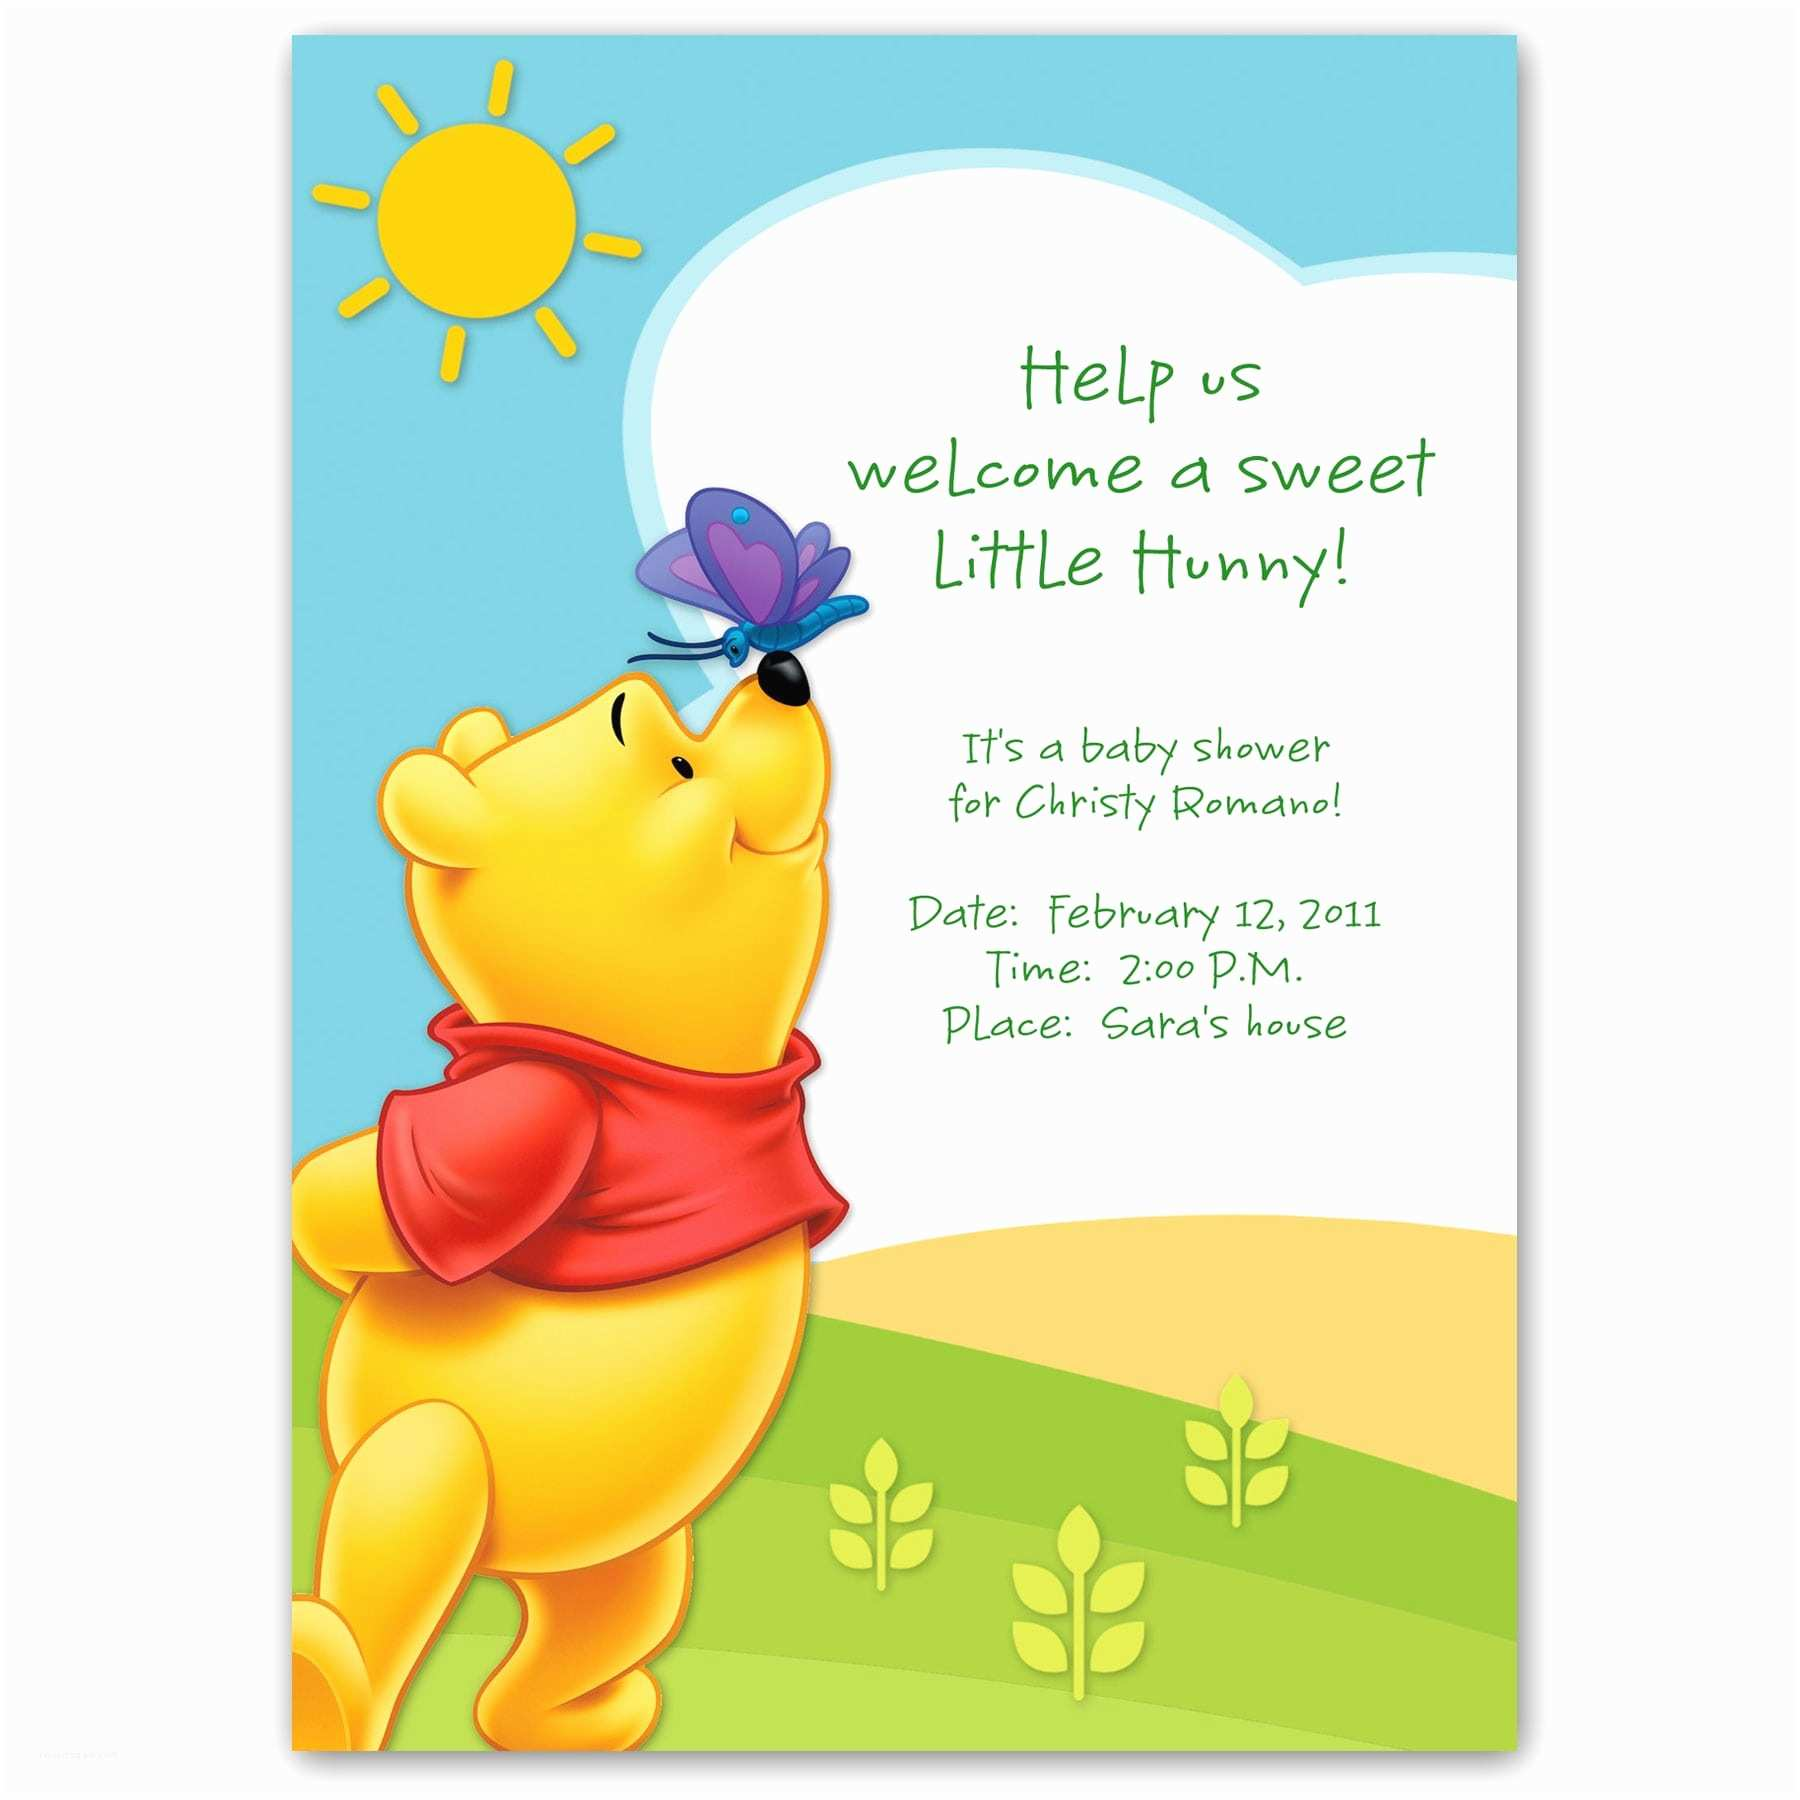 Classic Winnie the Pooh Baby Shower Invitations Winnie the Pooh Baby Shower Invitation Template